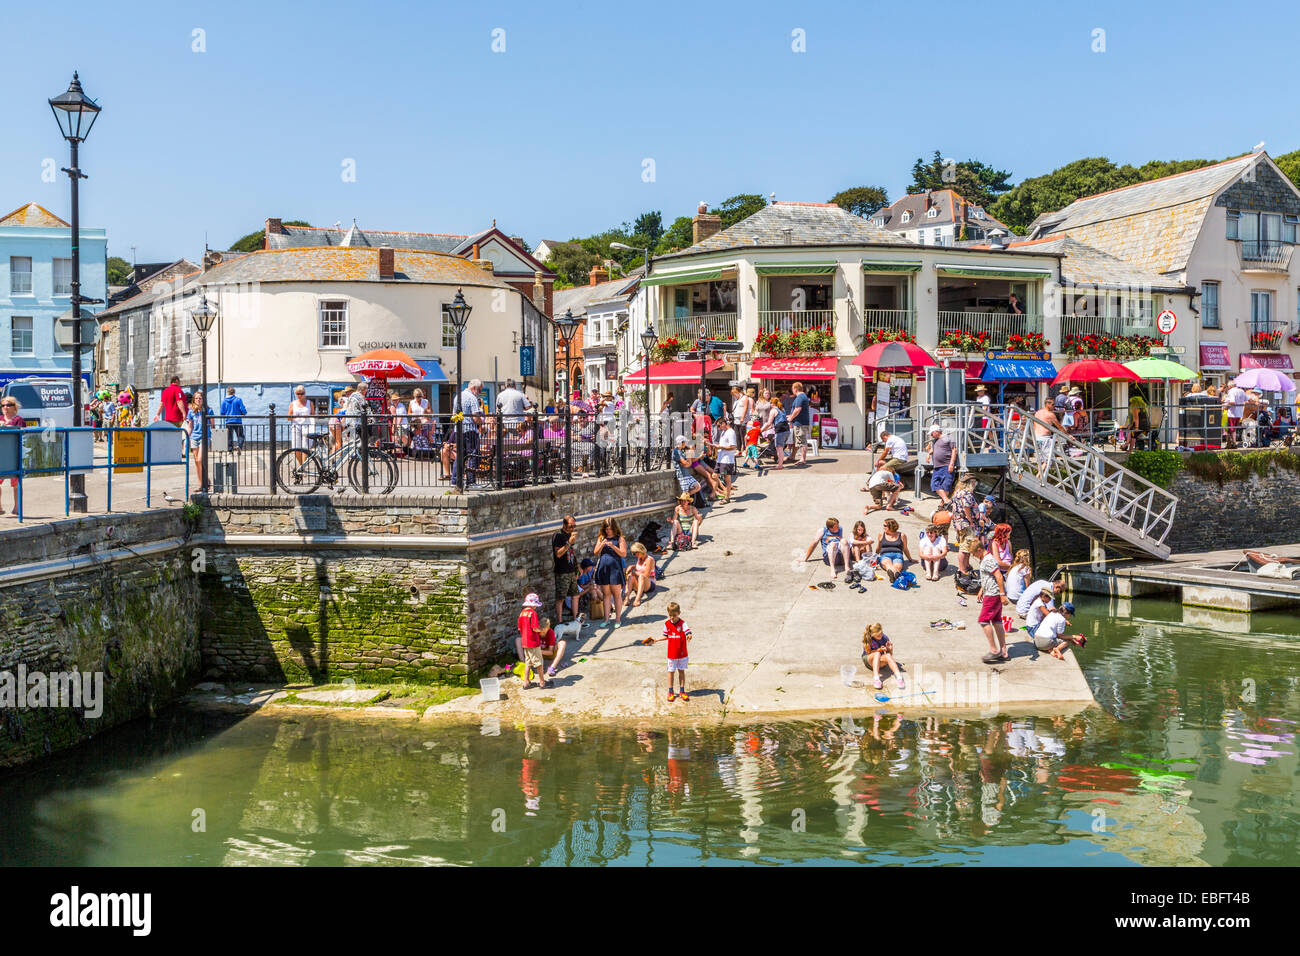 A Panoramic view of holidaymakers enjoying Padstow Harbour Cornwall, England UK - Stock Image